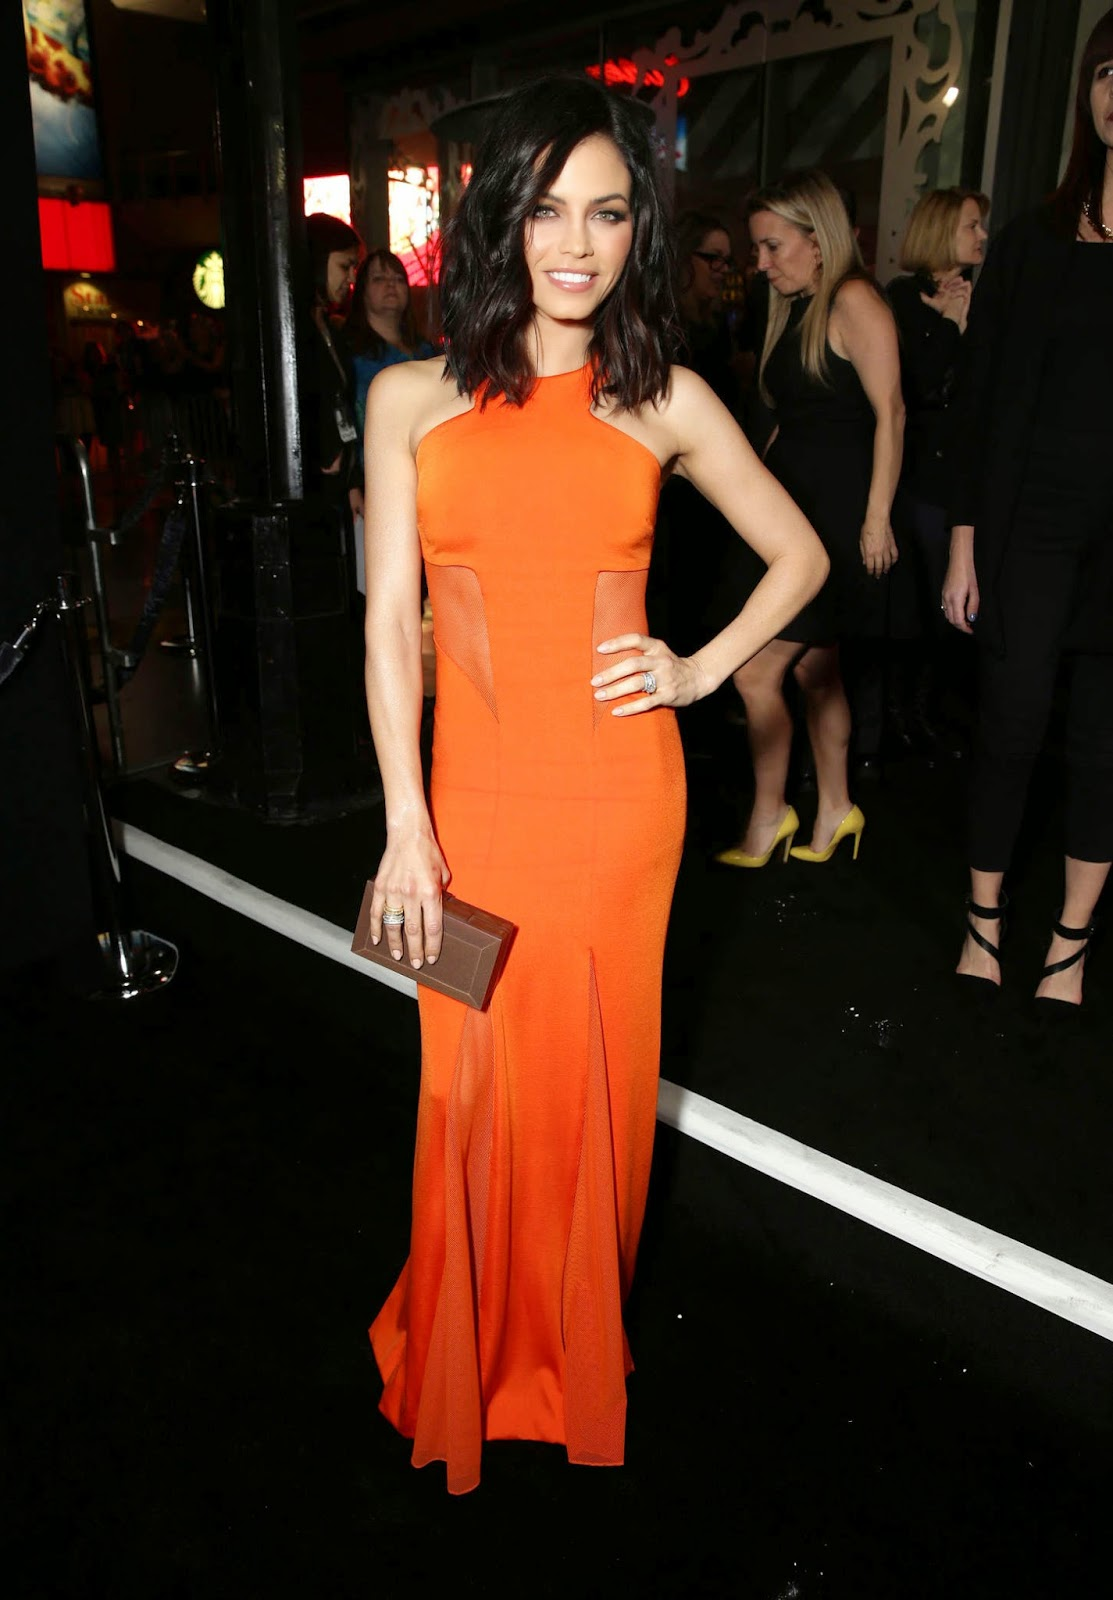 Jenna Dewan-Tatum stuns in an orange maxi dress at the 'Jupiter Ascending' Hollywood premiere